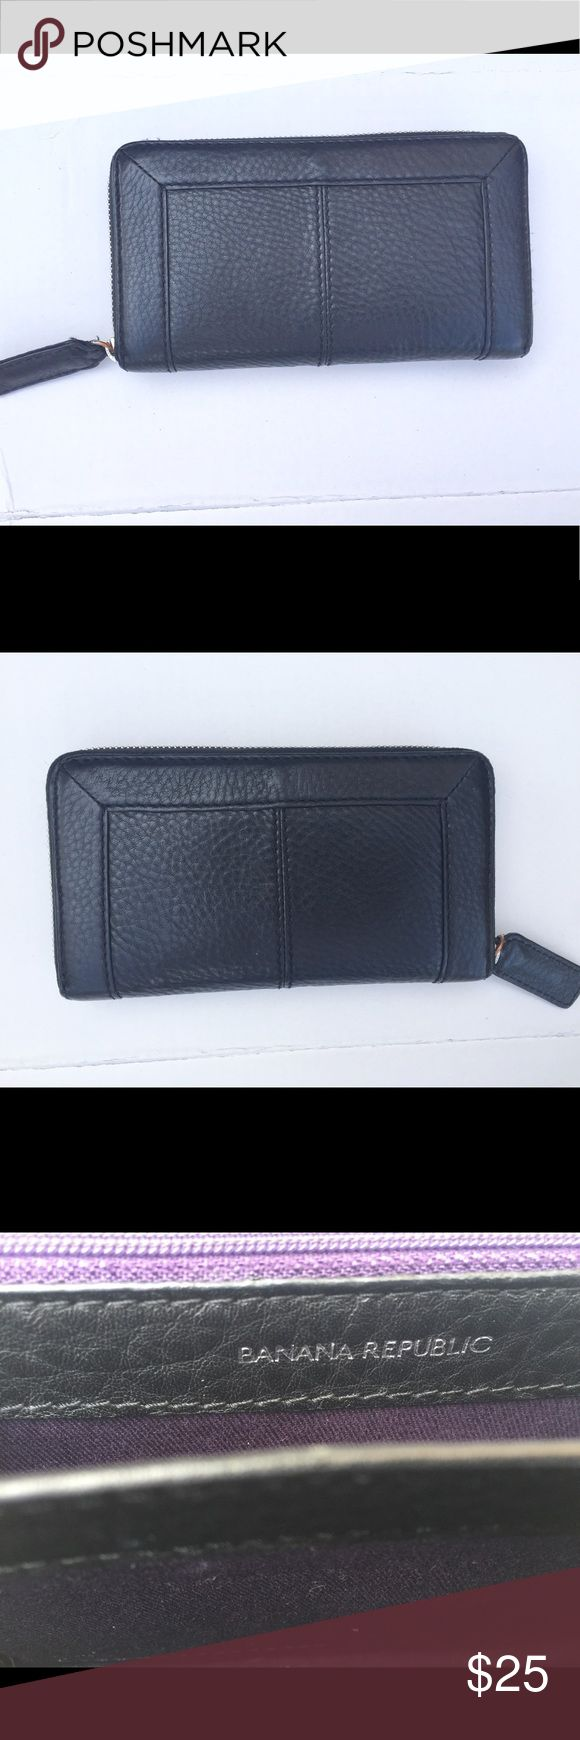 BLACK LEATHER BANANA REPUBLIC WALLET Black leather Banana Republic zip wallet. No signs of wear! Comes with 12 card slots and a zip compartment for coins. Original purchase price is currently unknown. Banana Republic Bags Wallets